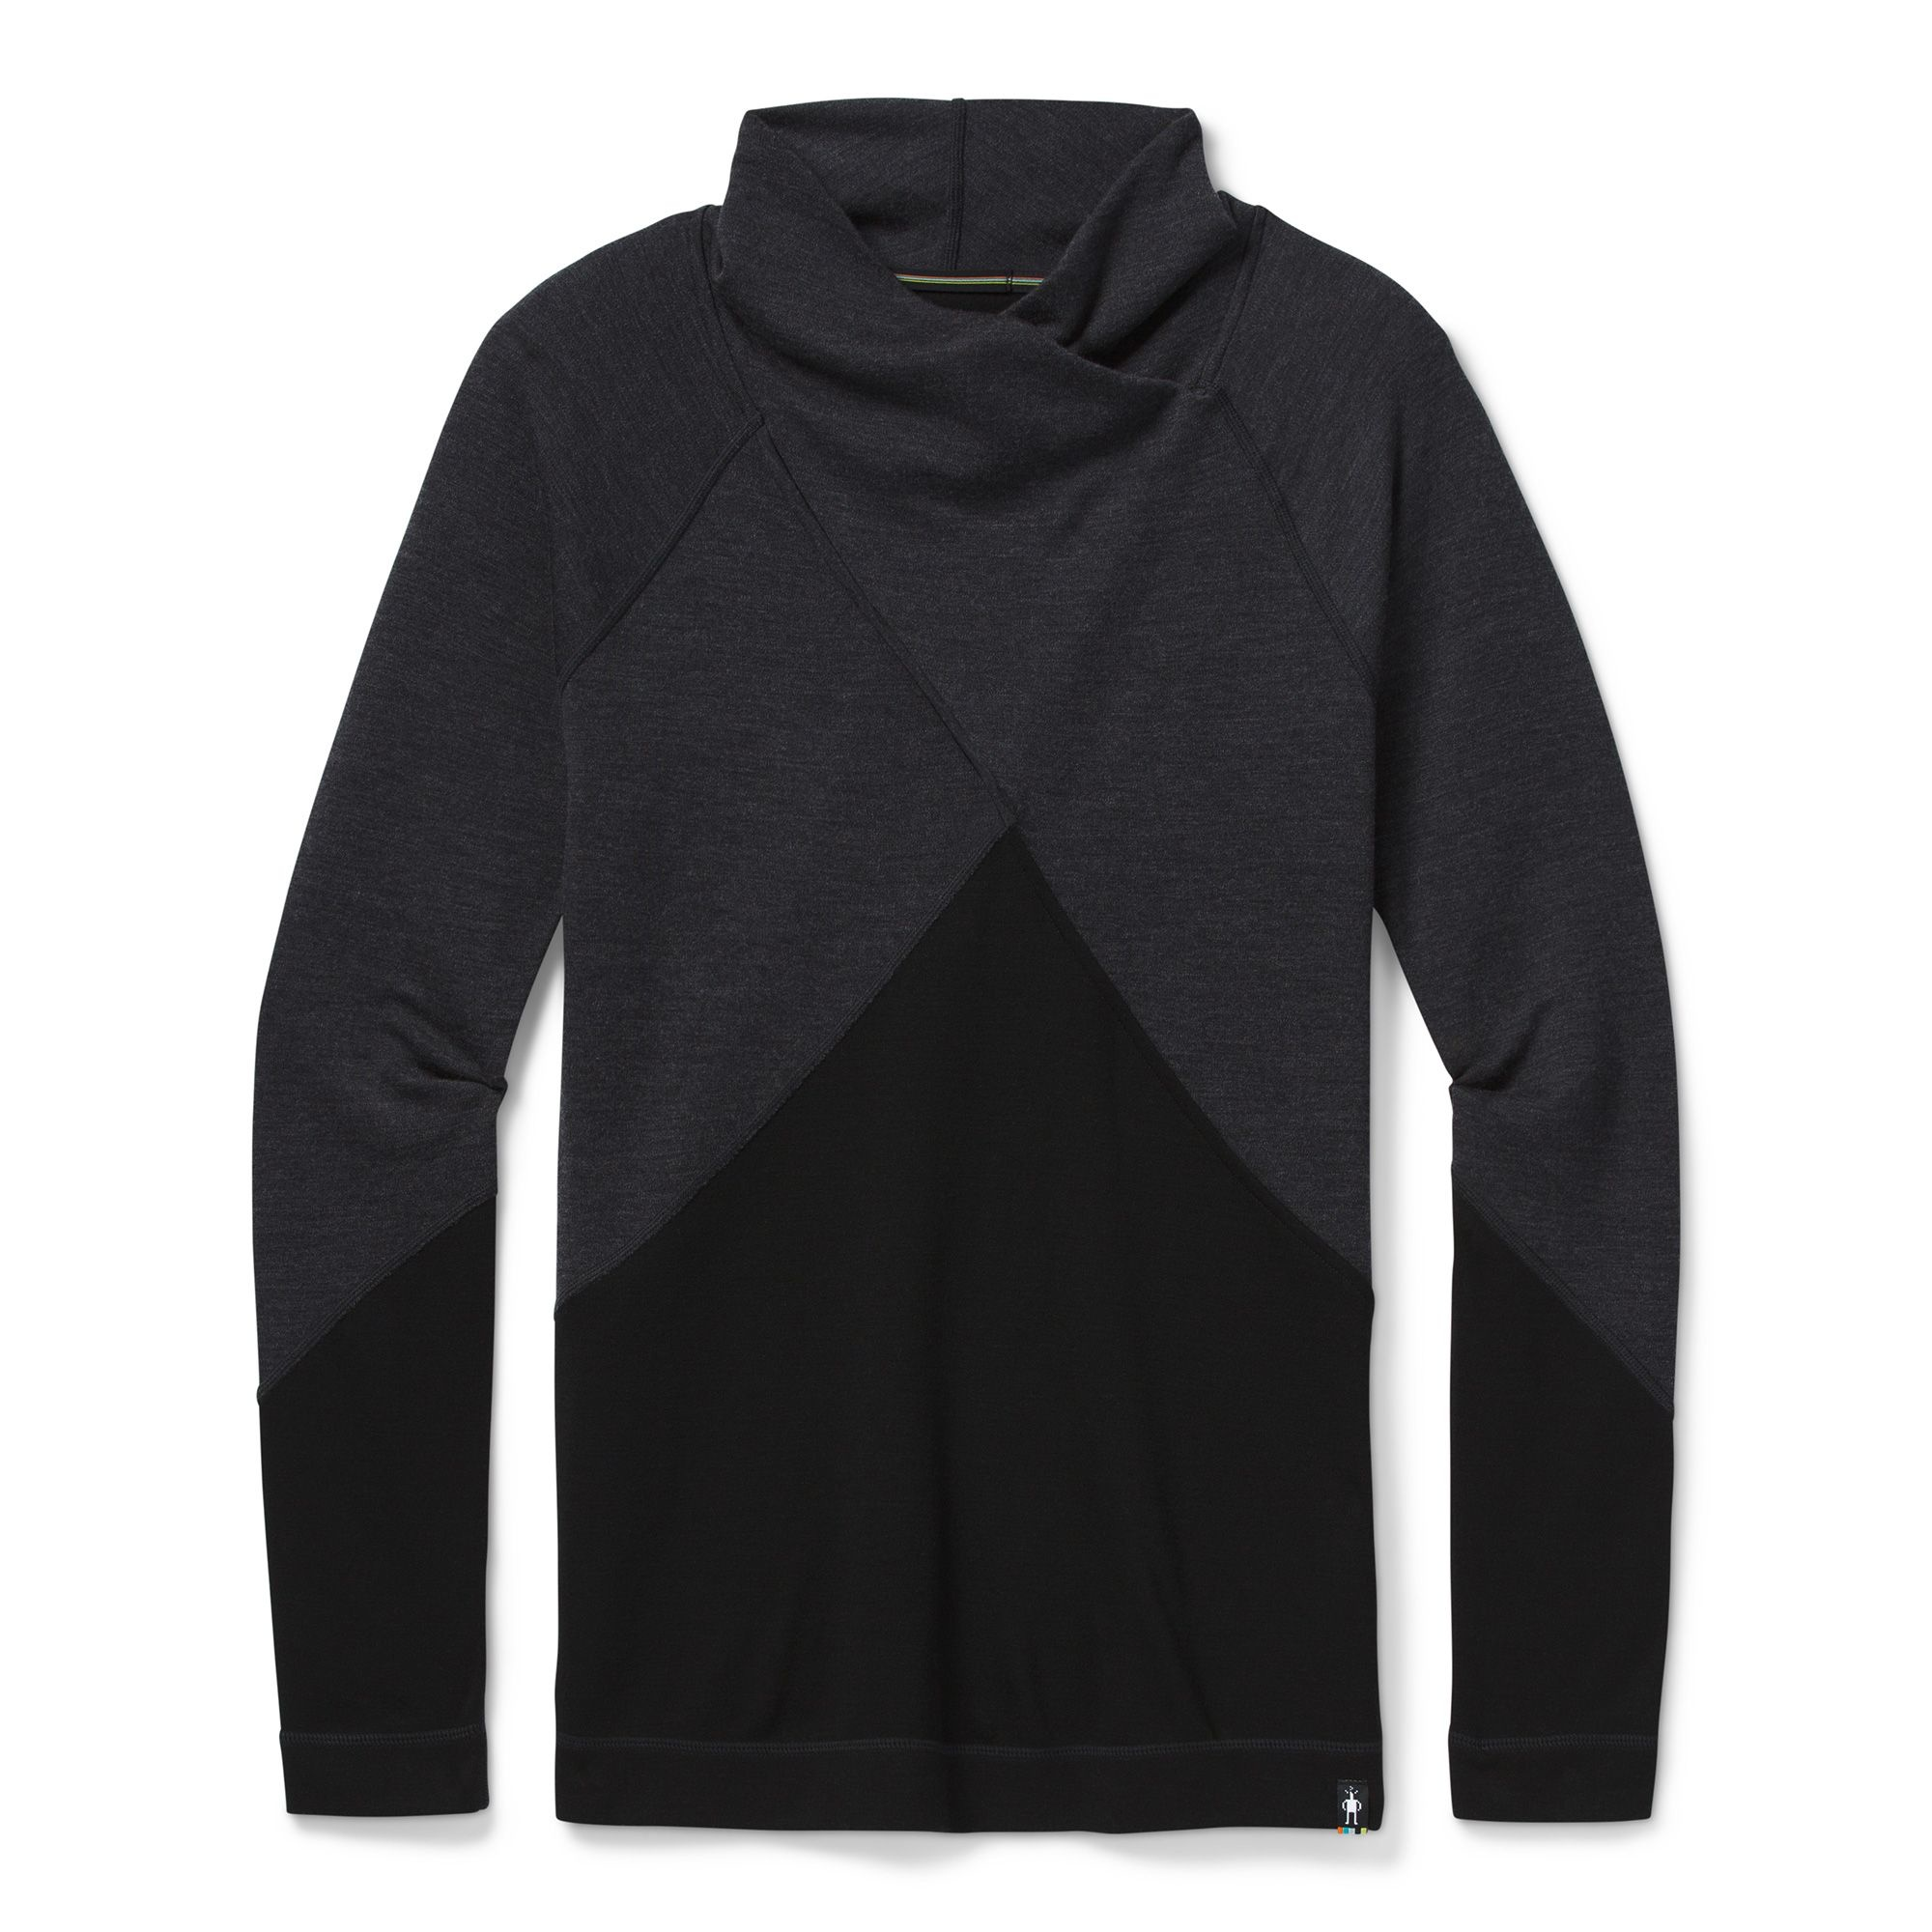 Smartwool Merino 250 Crossover Neck, Charcoal